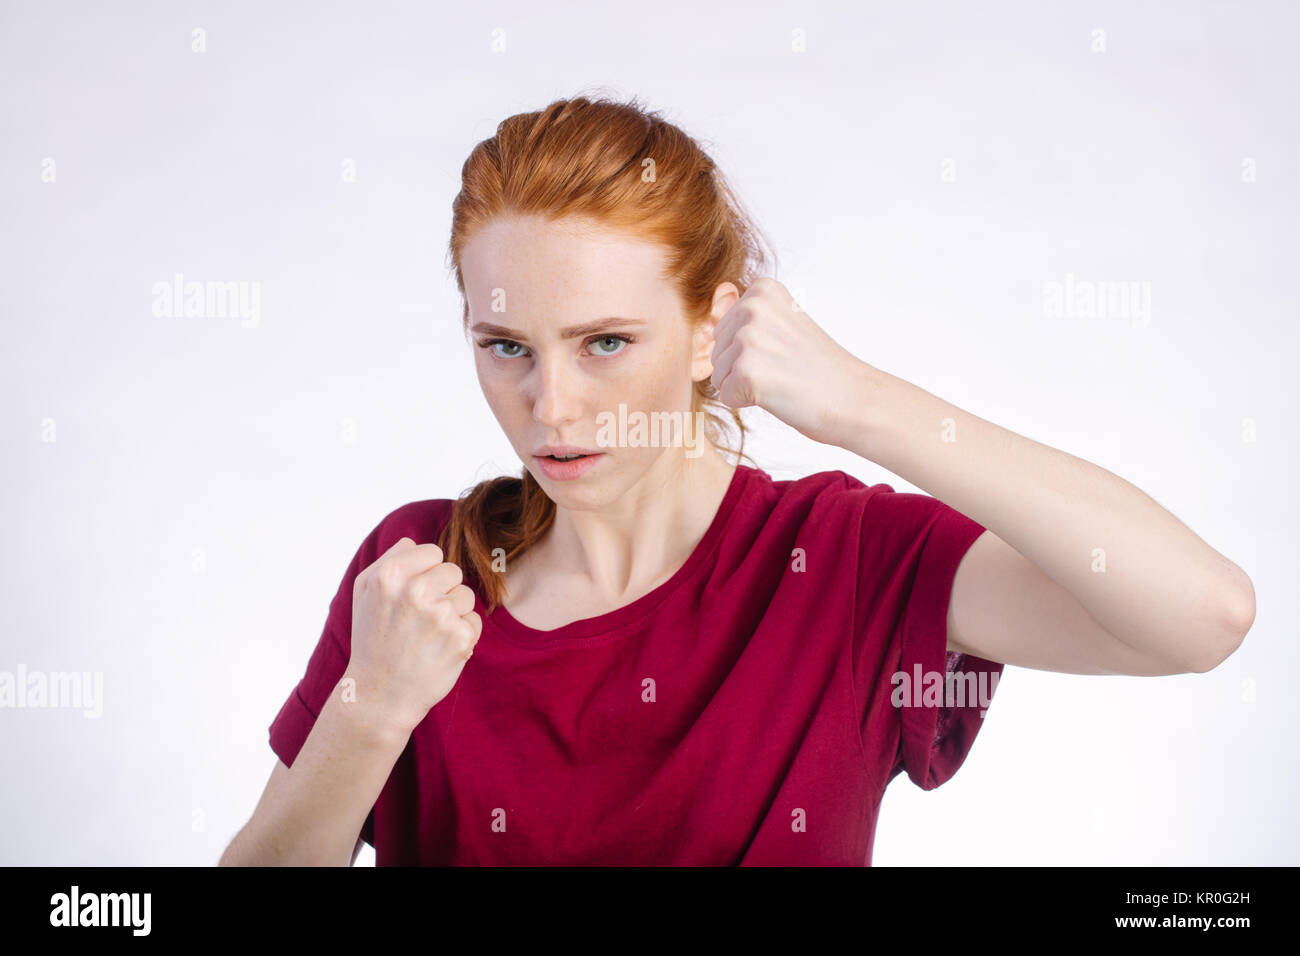 angry woman standing with raised knuckles on white background - Stock Image